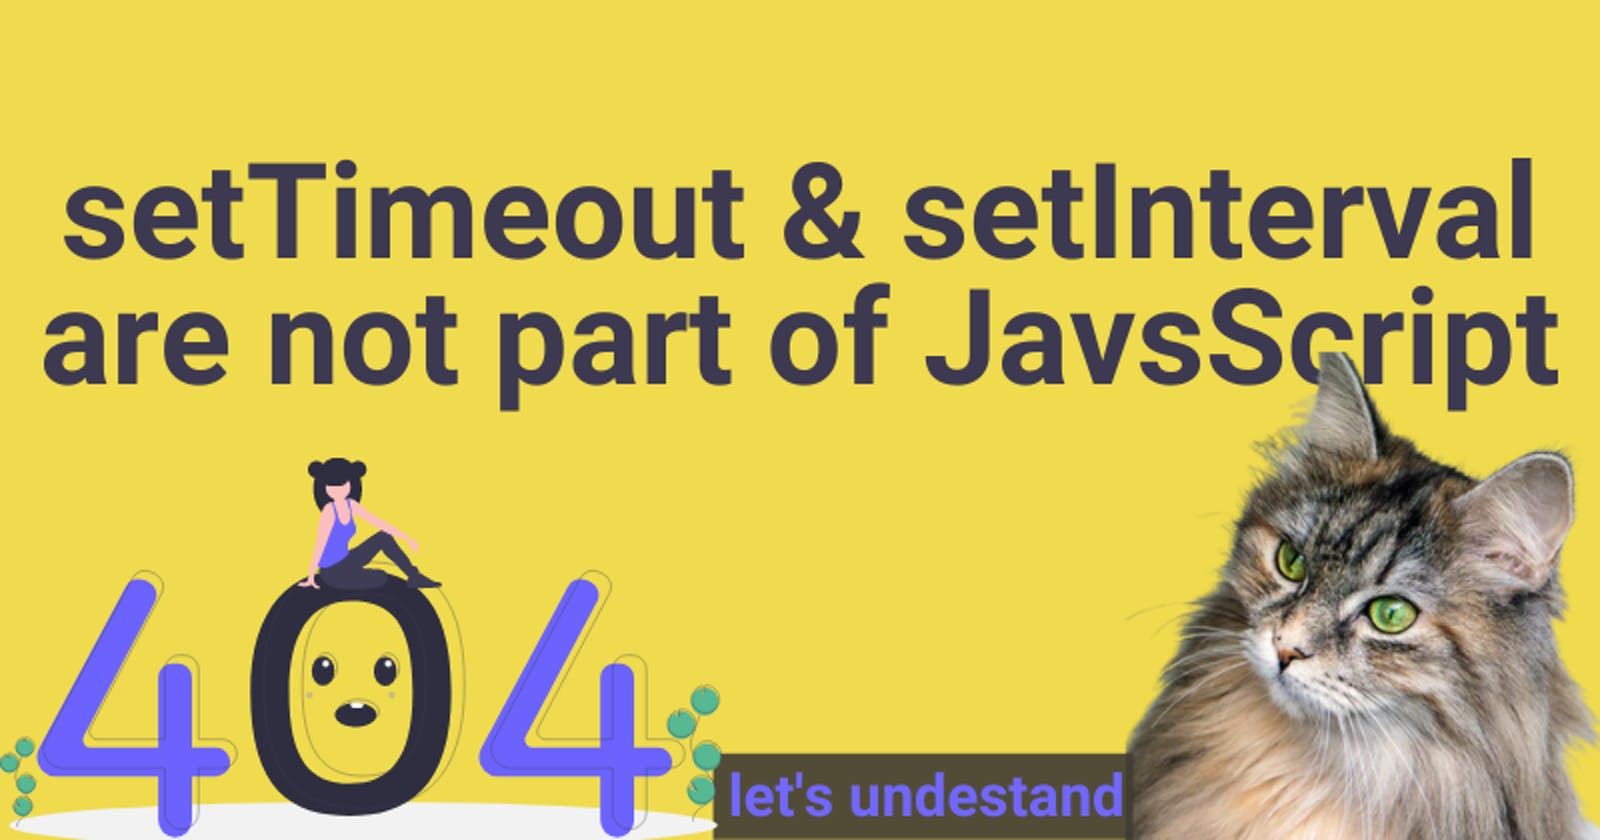 setTimeout is not a part of JavaScipt